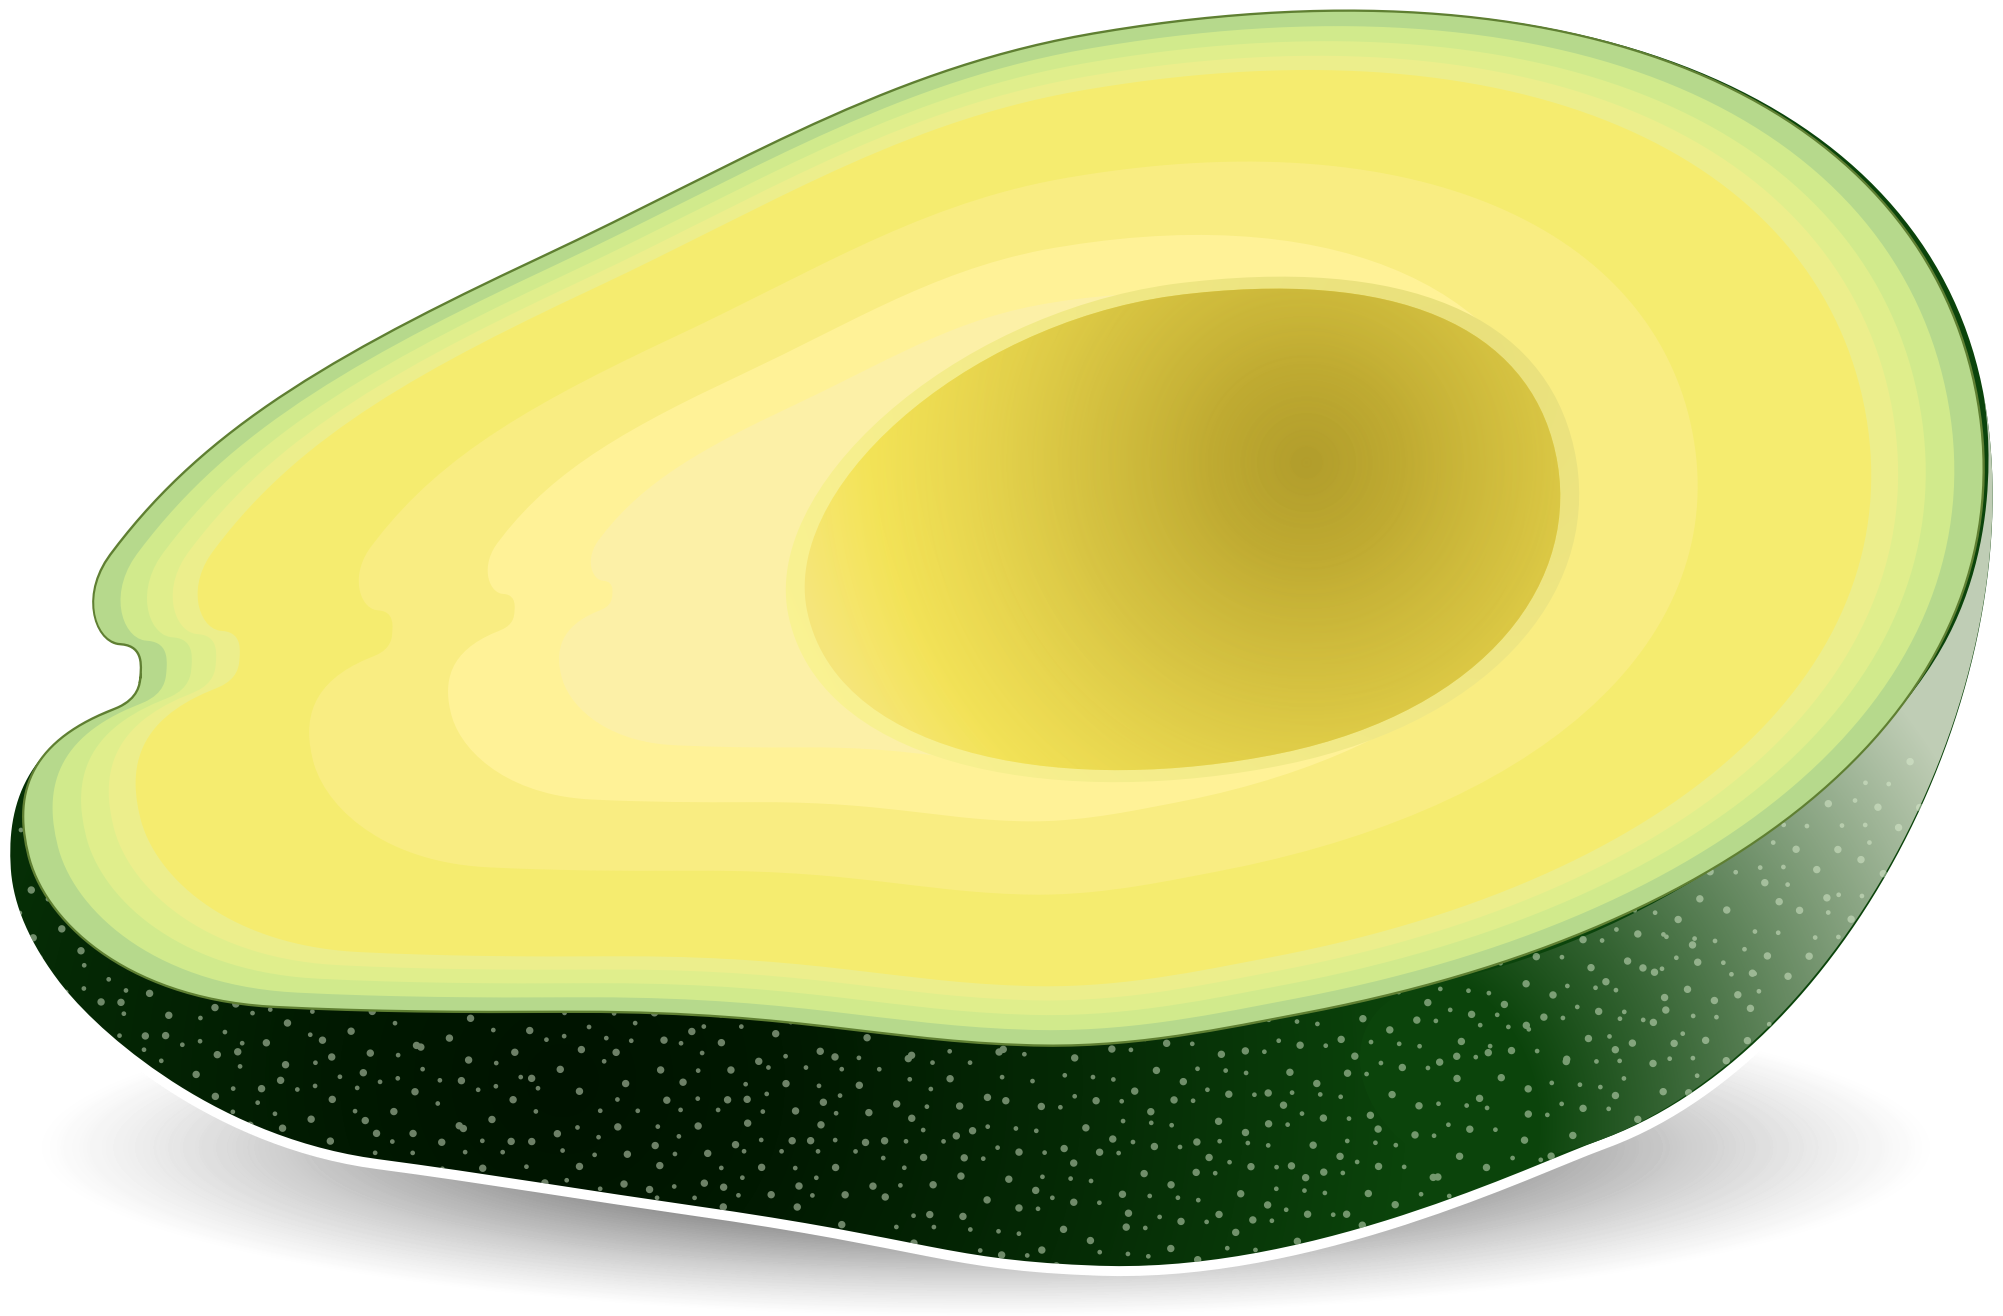 clipart royalty free stock Big image png. Avocado clipart